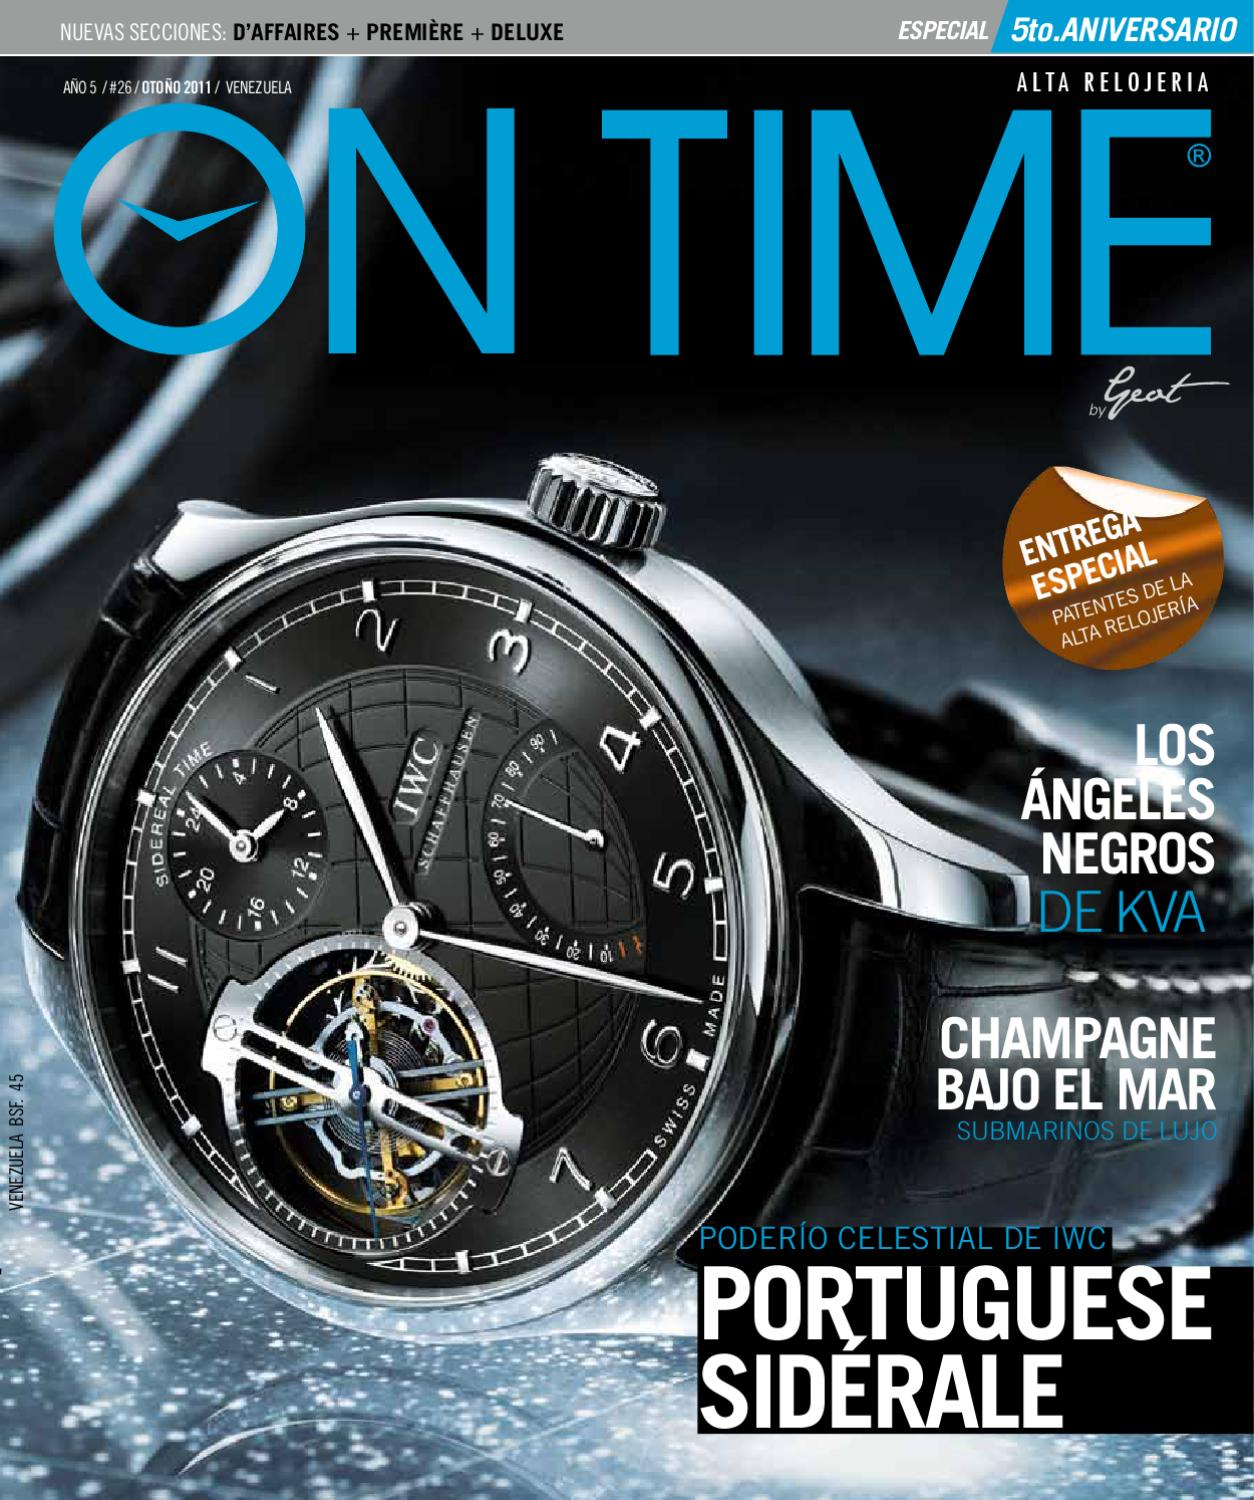 cb4effb0d42d On Time - Otoño 2011 by Geot  Grupo Editorial On Time  - issuu